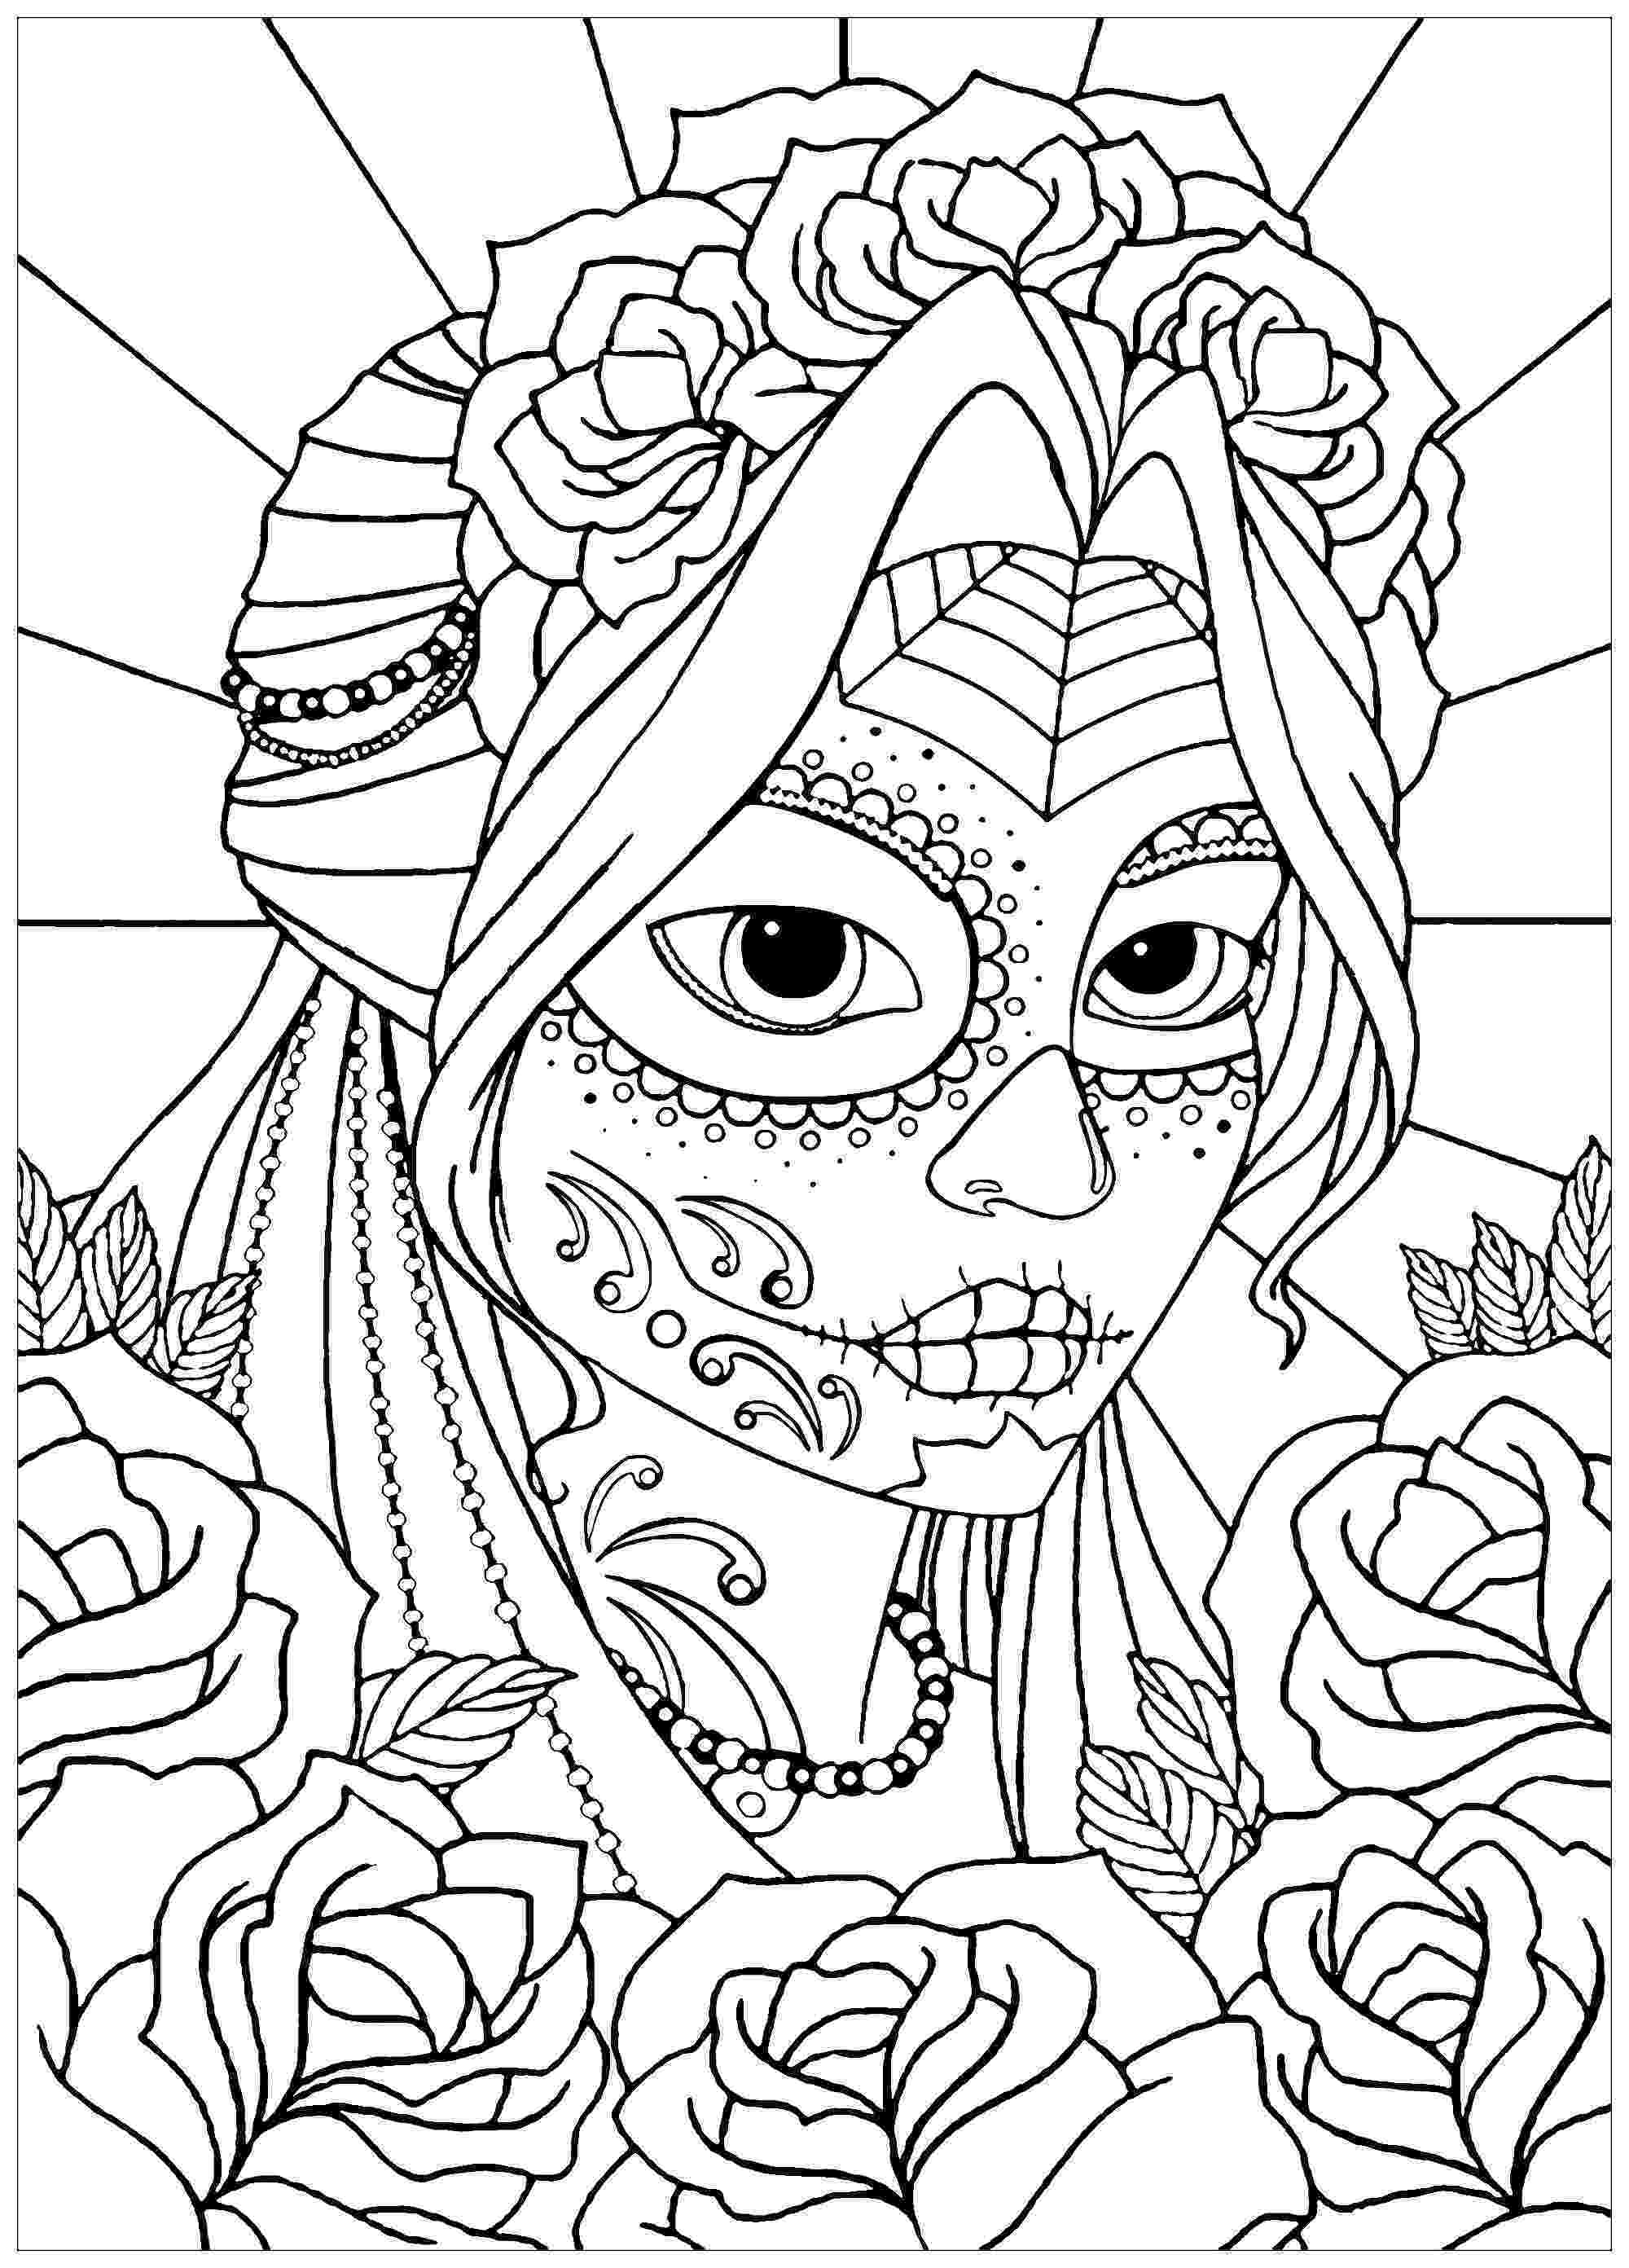 coloring books for grown ups dia de los muertos woman el dia de los muertos el dia de los muertos adult de muertos coloring books grown los dia for ups